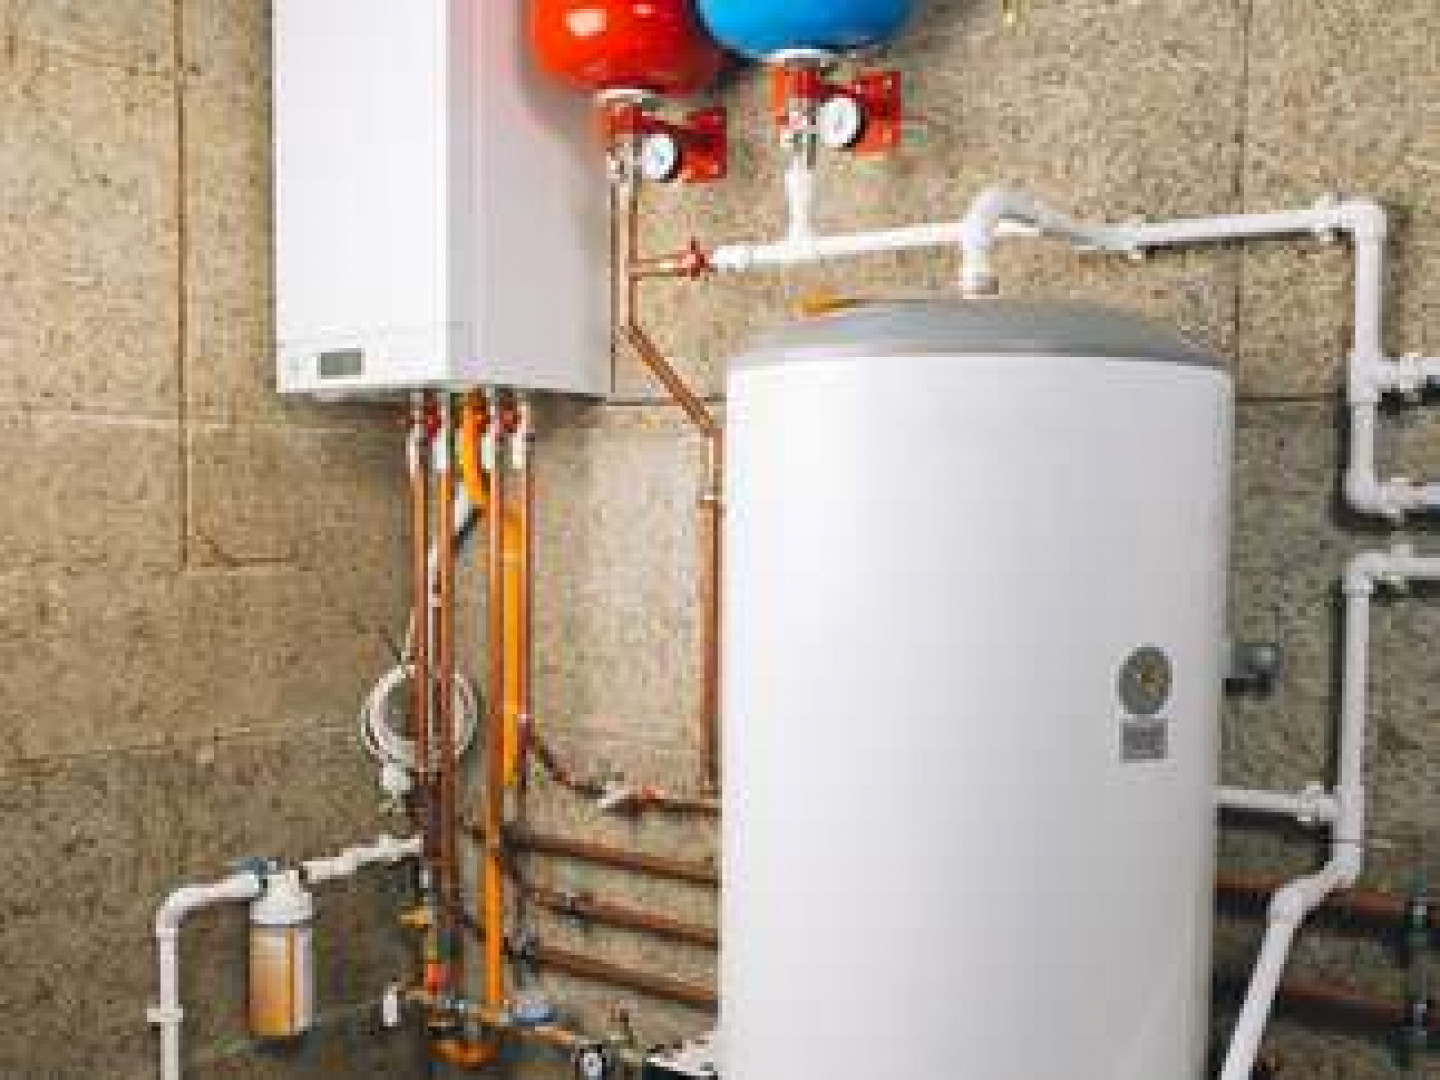 Make Sure Your Home Has a Reliable Supply of Hot Water